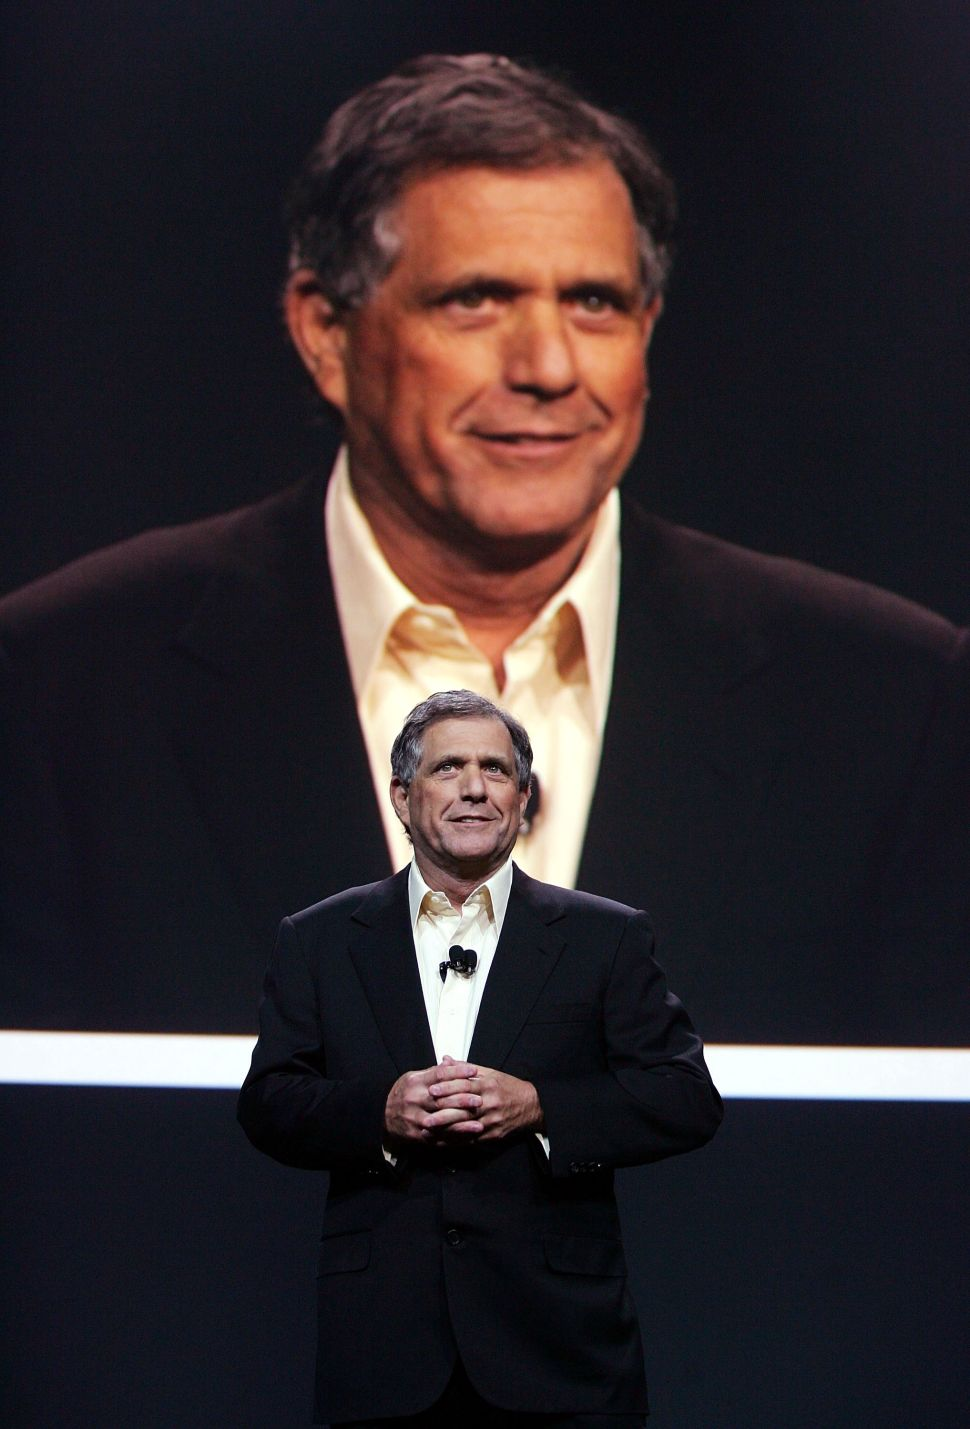 Leslie Moonves.